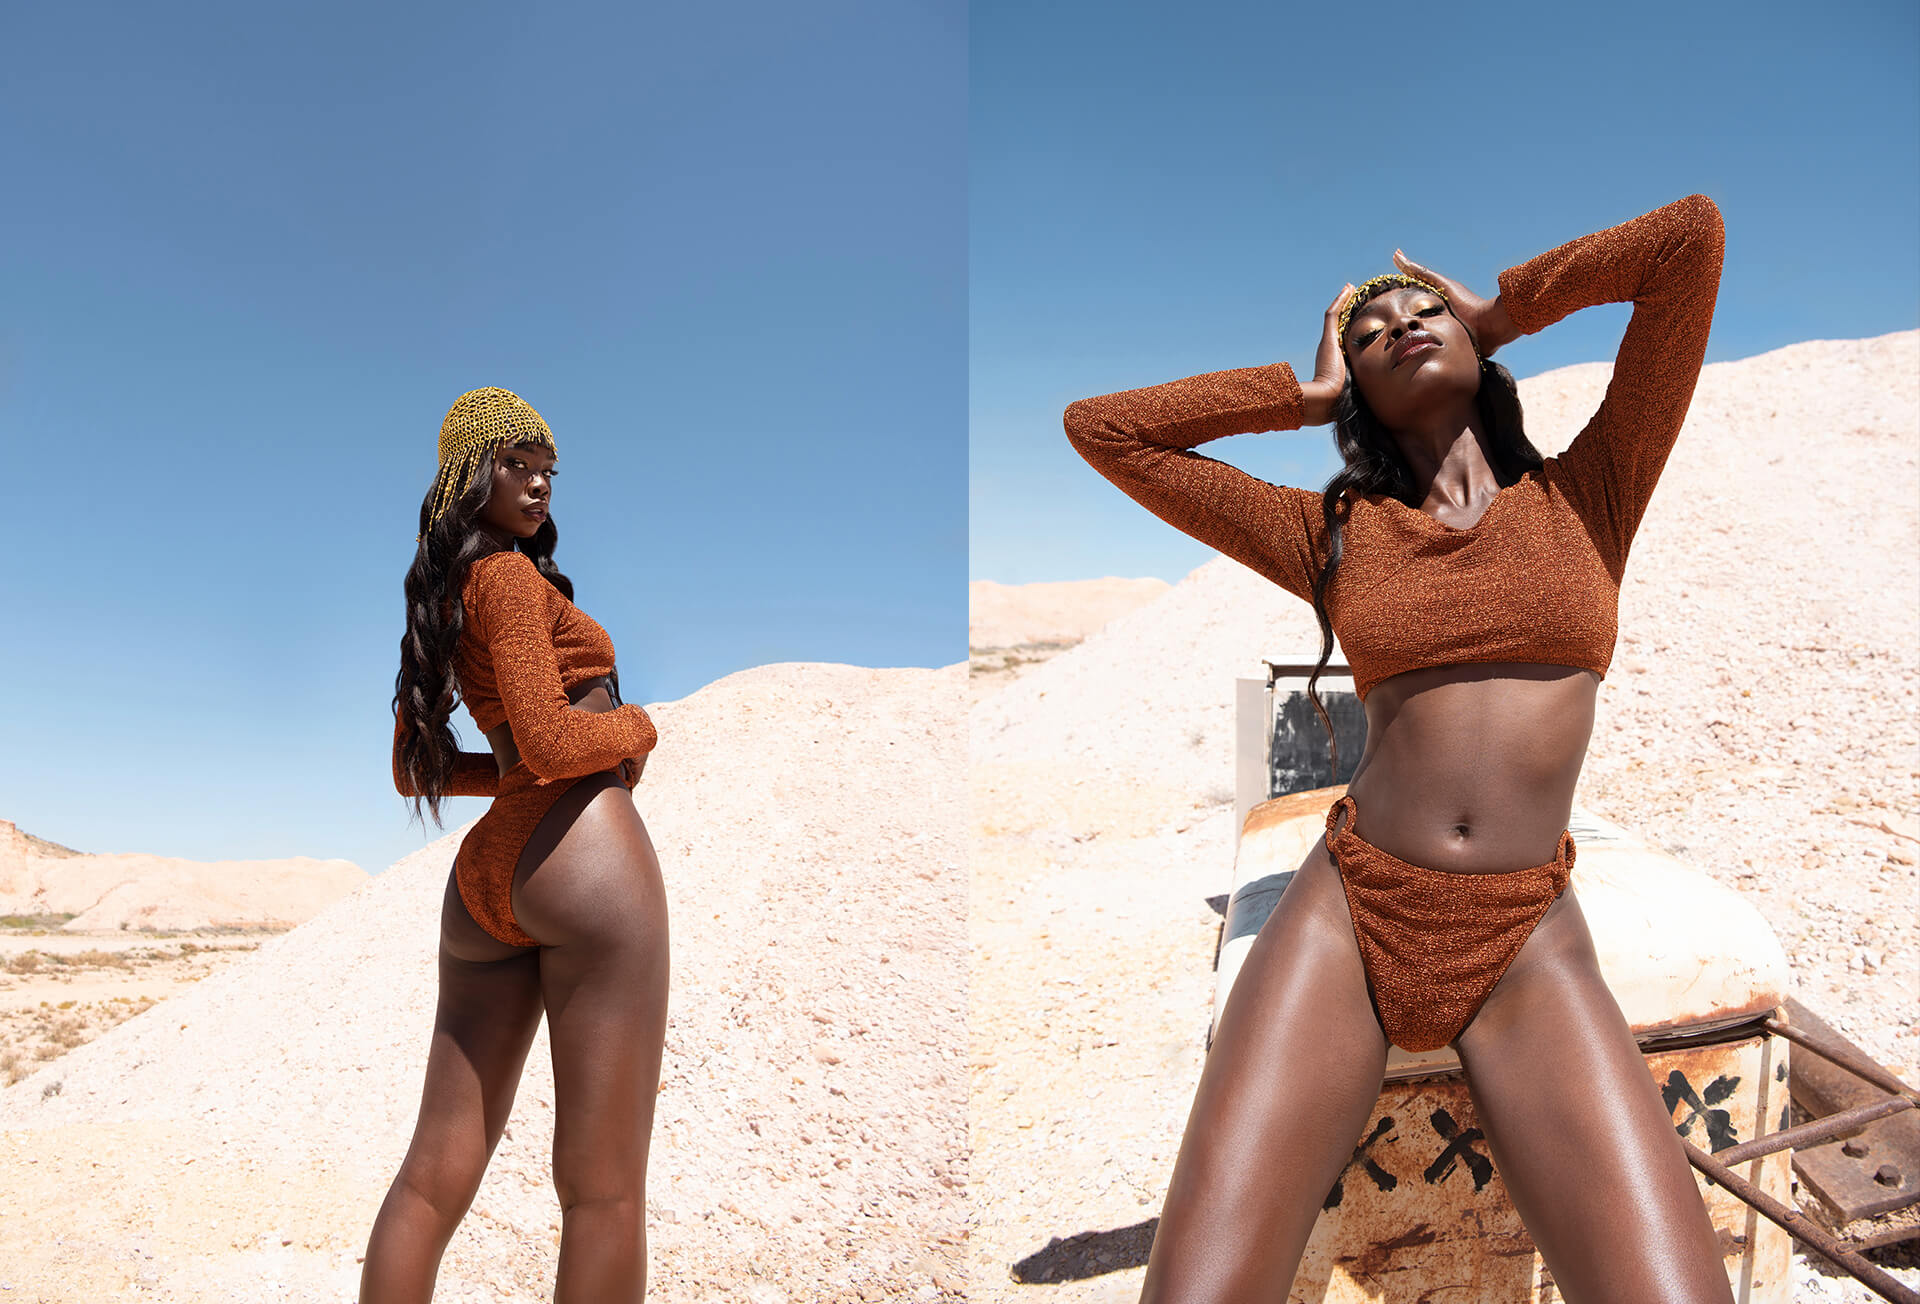 Desert Dreams Lookbook Image 19 Desktop